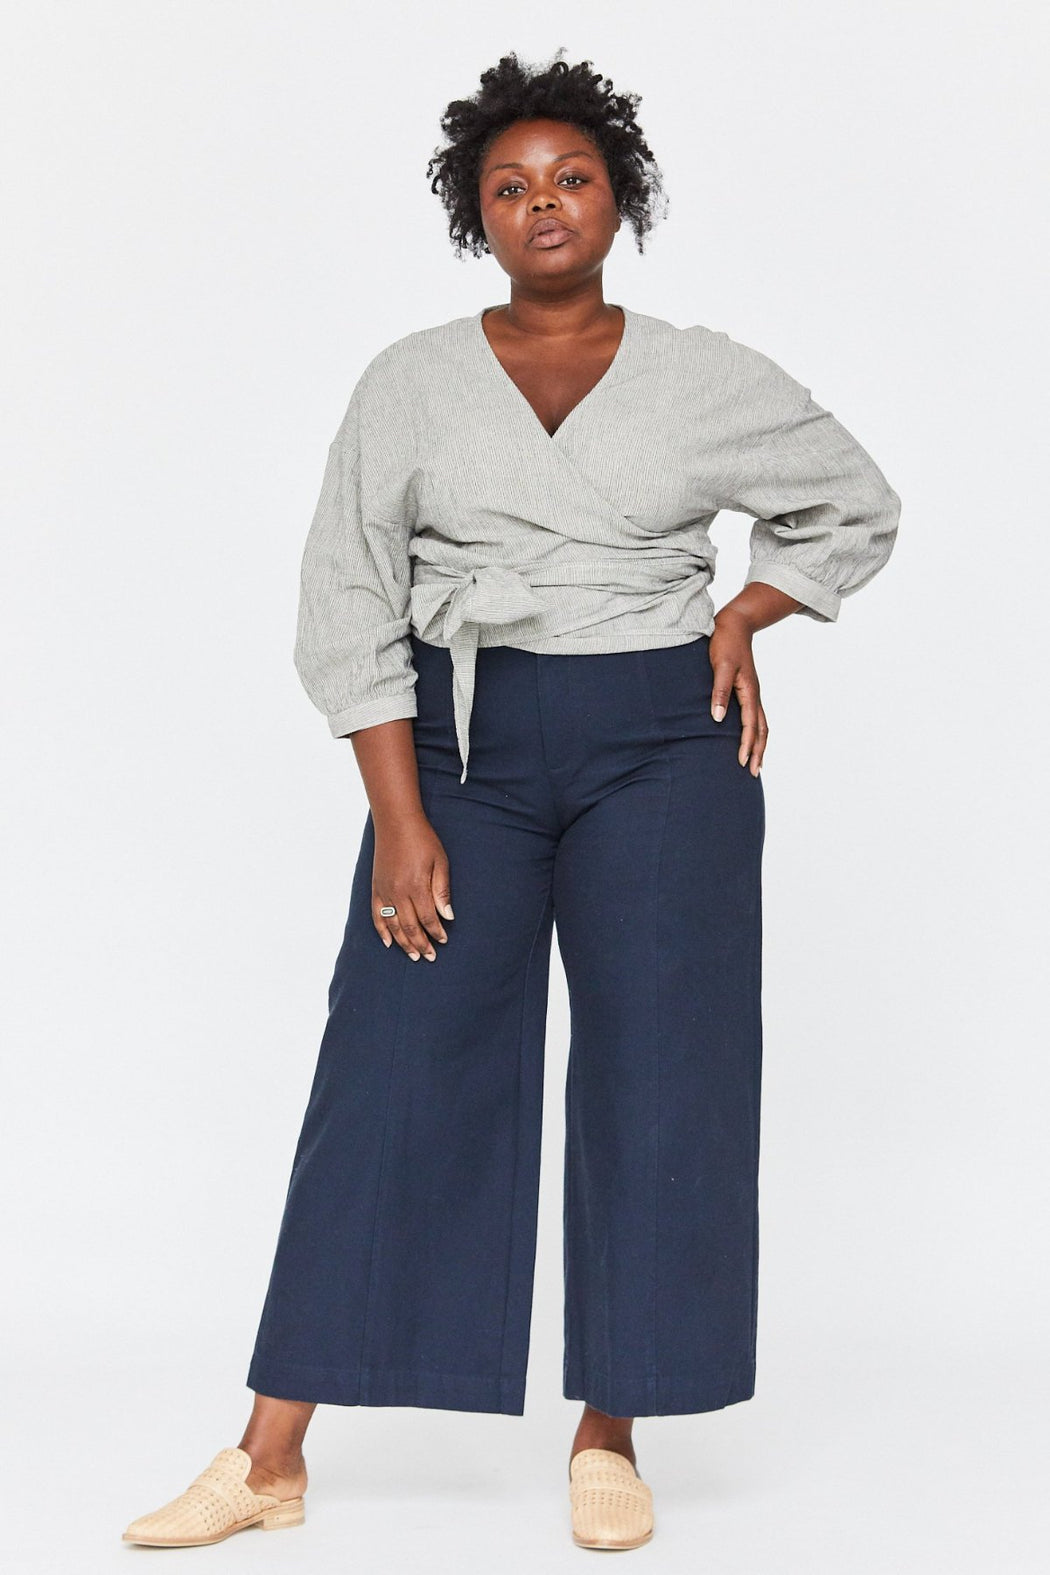 Esby Apparel Plus Size Ethical Fashion | Plus Size Colette Wrap Top